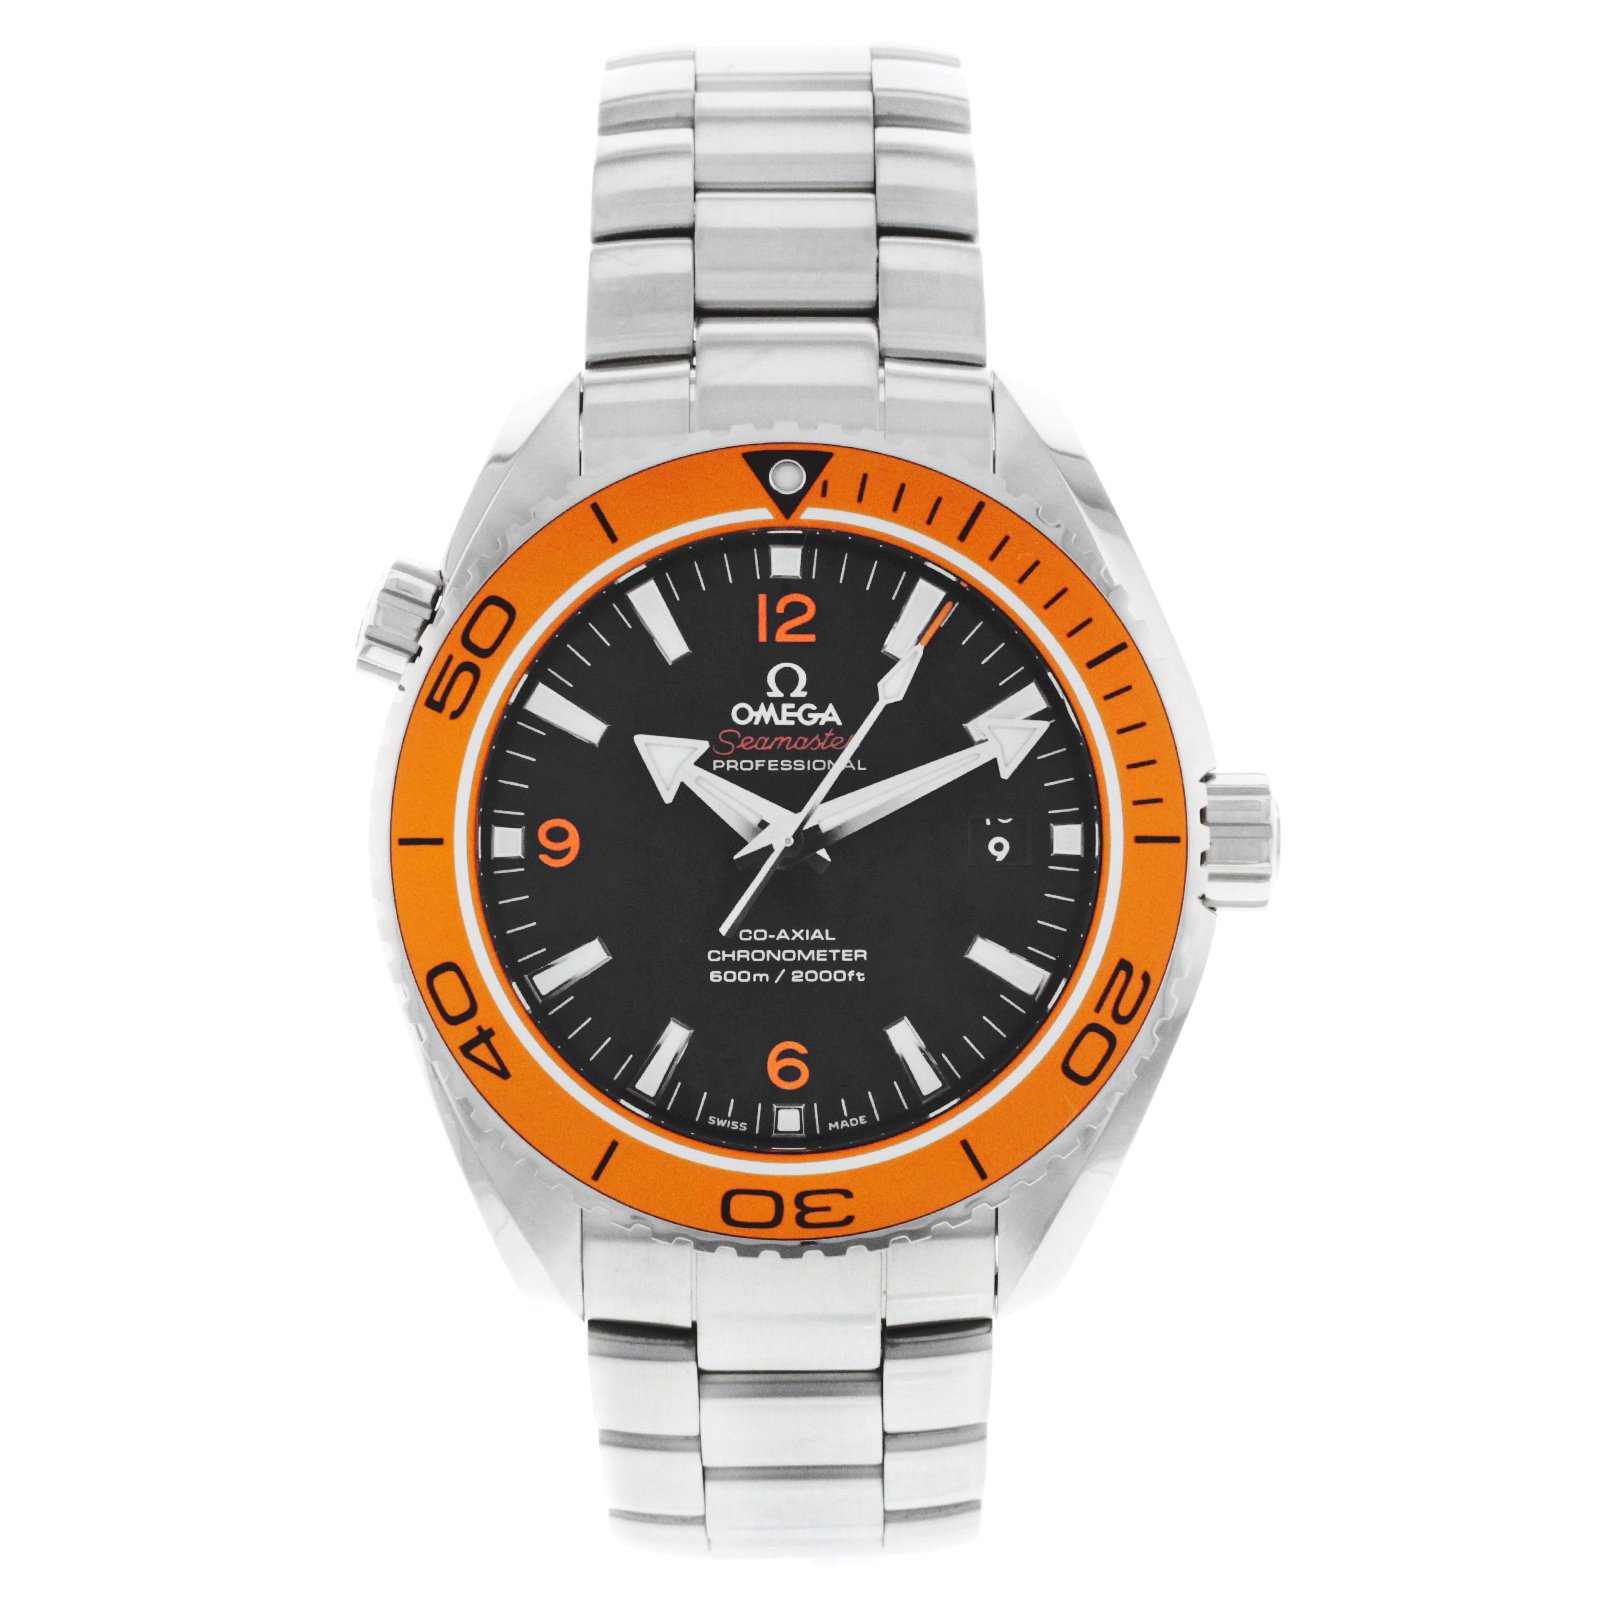 Omega B0072C8TRA B0072C8TRA To UK £3799 to US $4095 Omega Planet Ocean Black Dial Stainless Steel Mens Watch